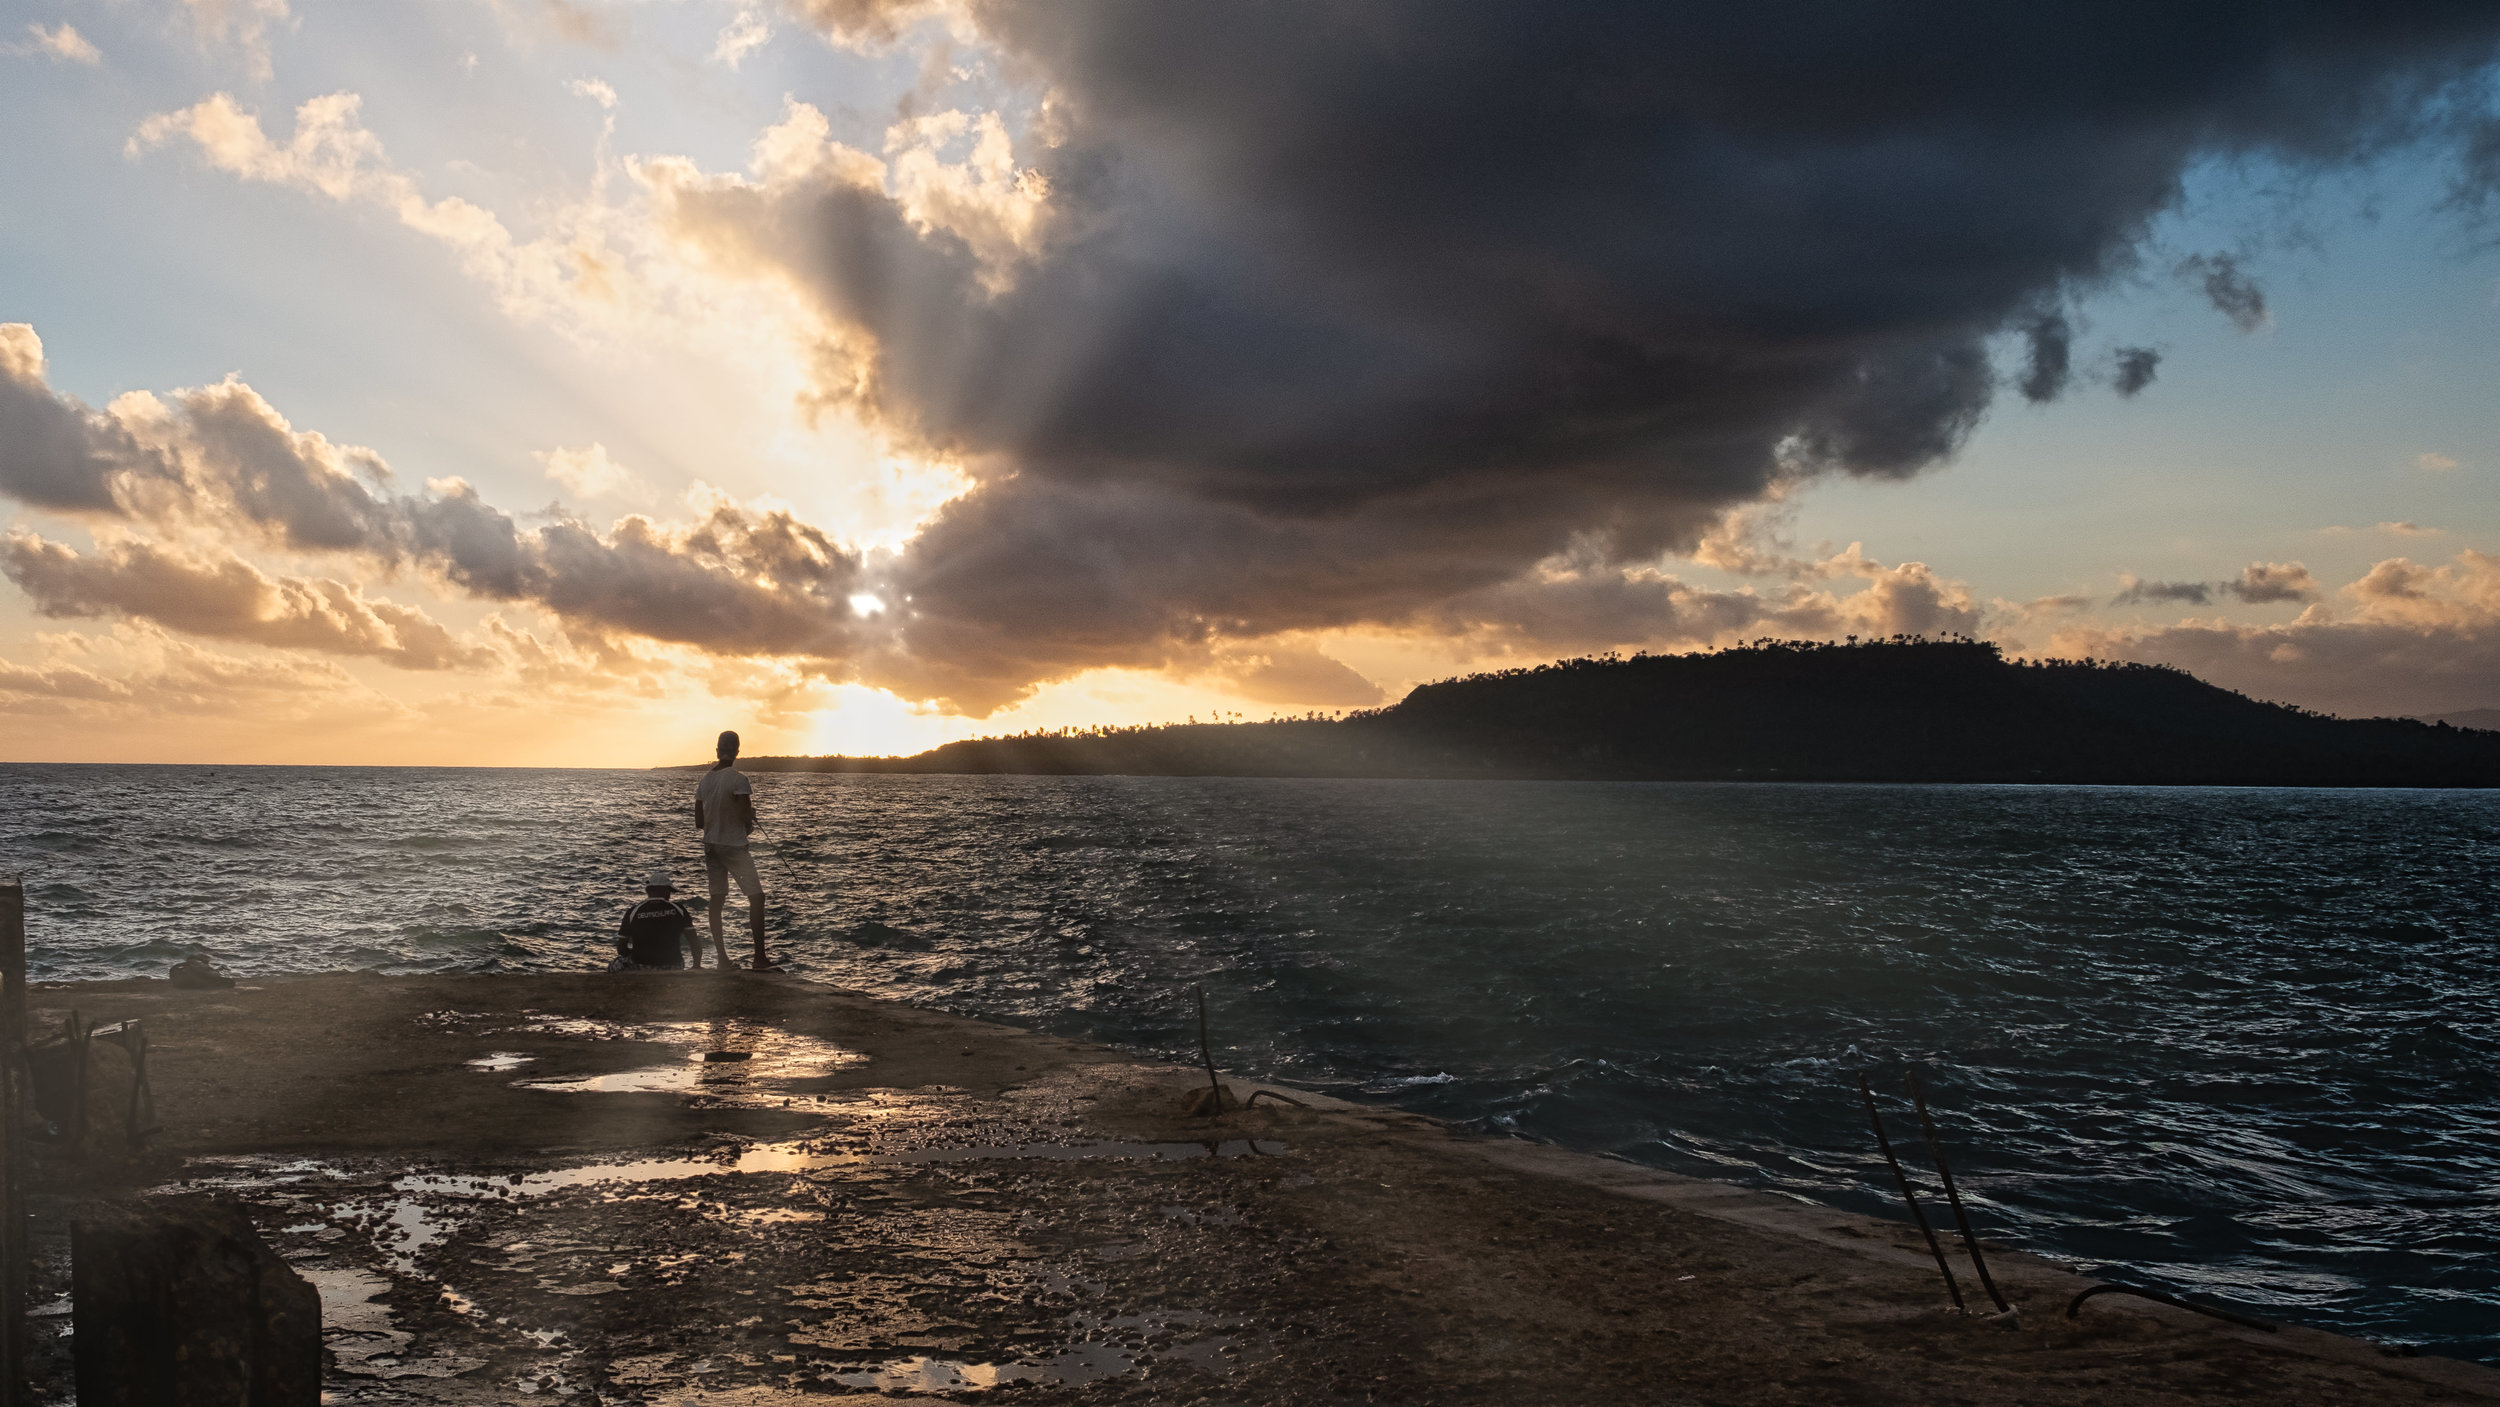 Sunrise Fishing off a Baracoa Pier. These Cuban men are hoping to catch breakfast, which might be their families only protein for the day.